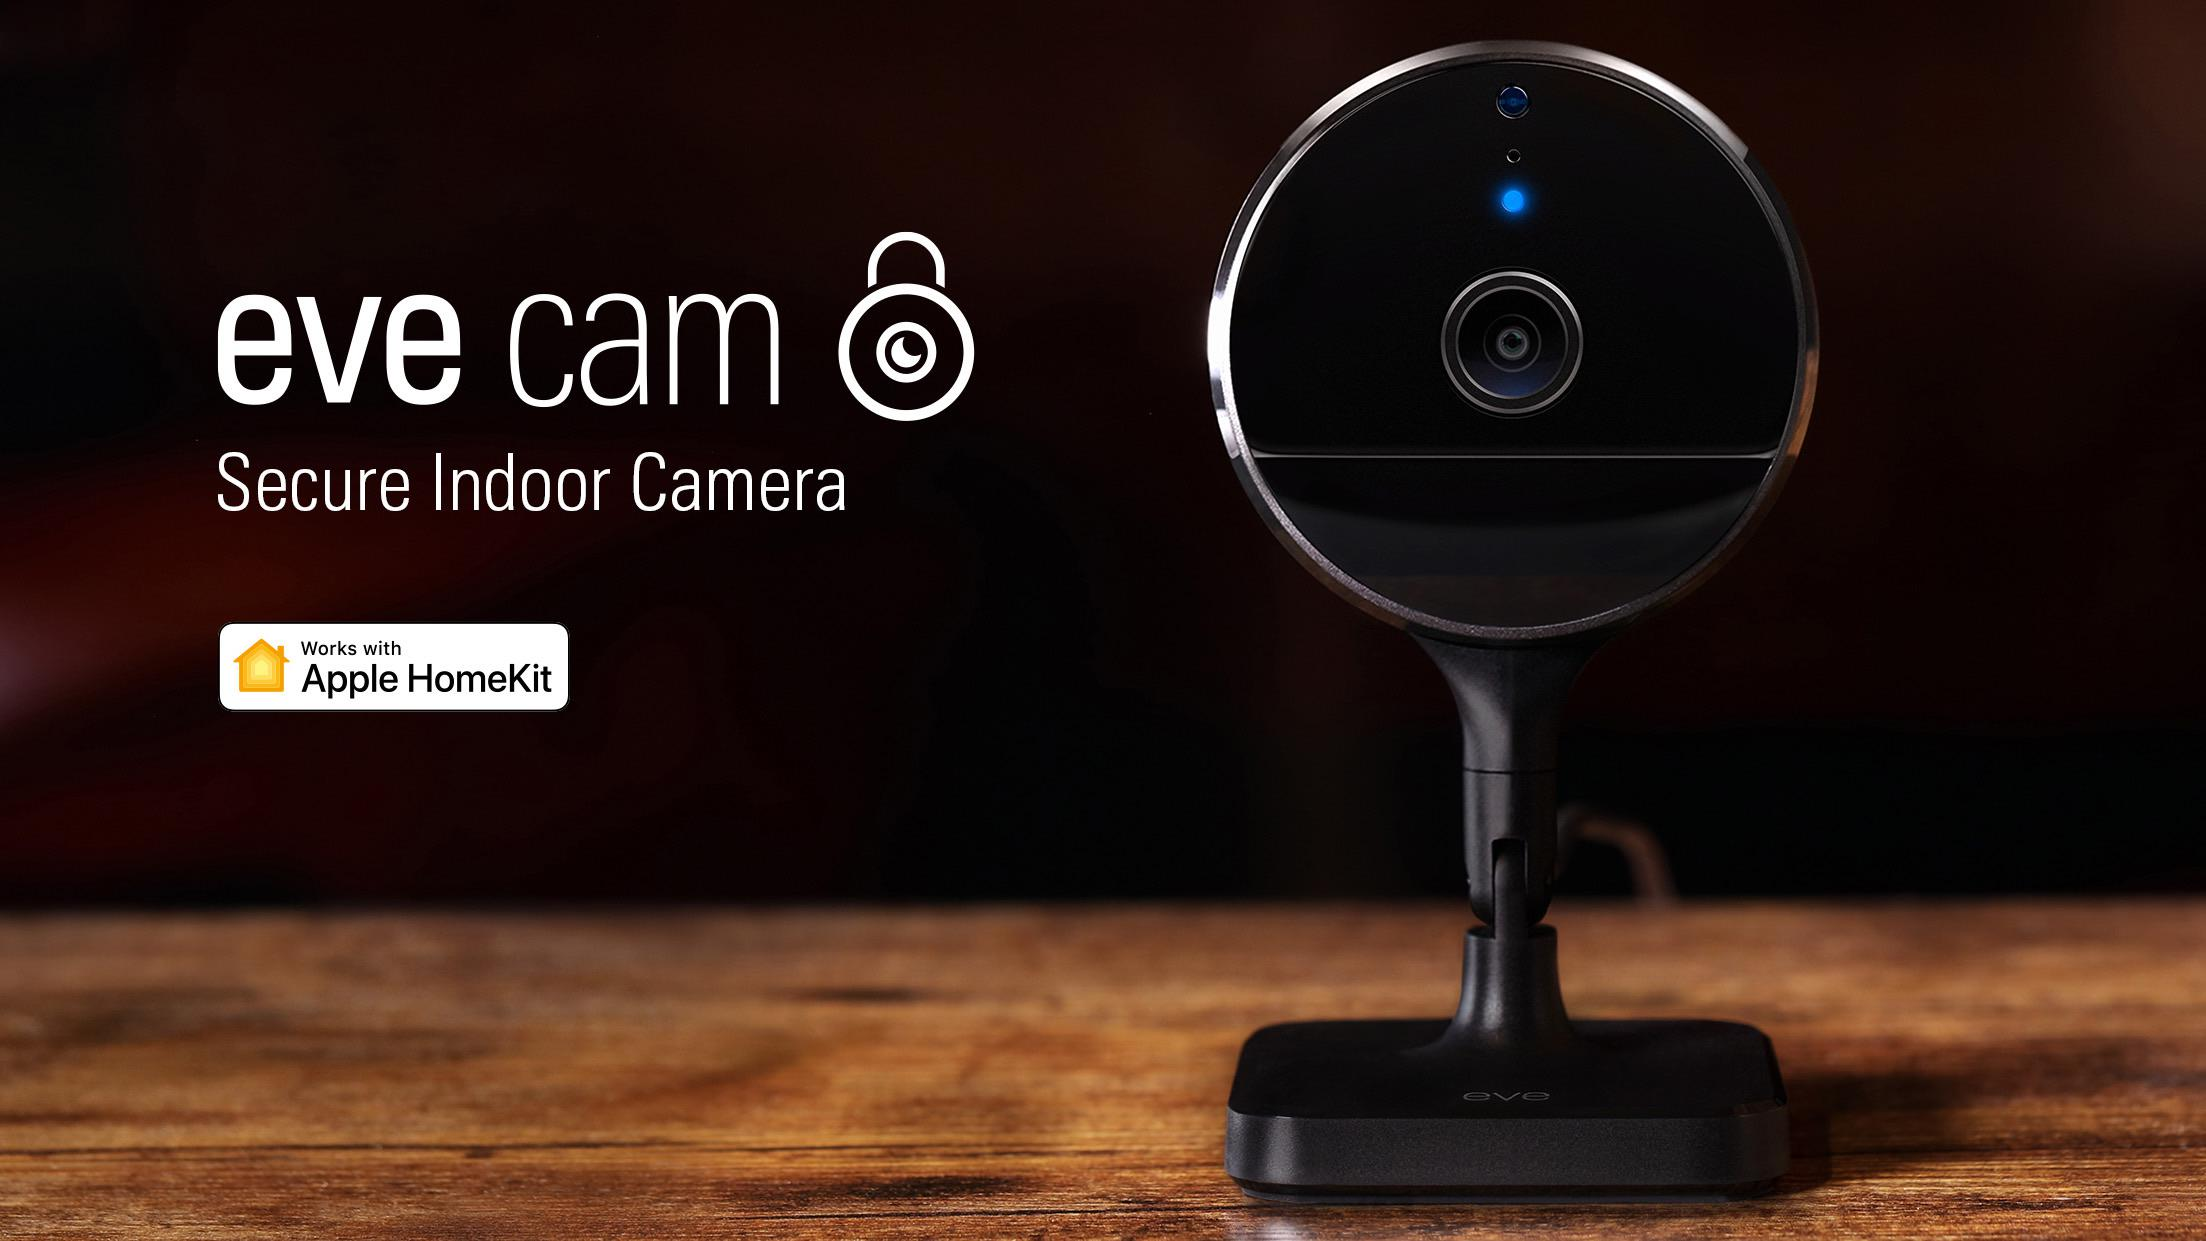 Eve Cam on June 23rd. Orders available today through the Eve website